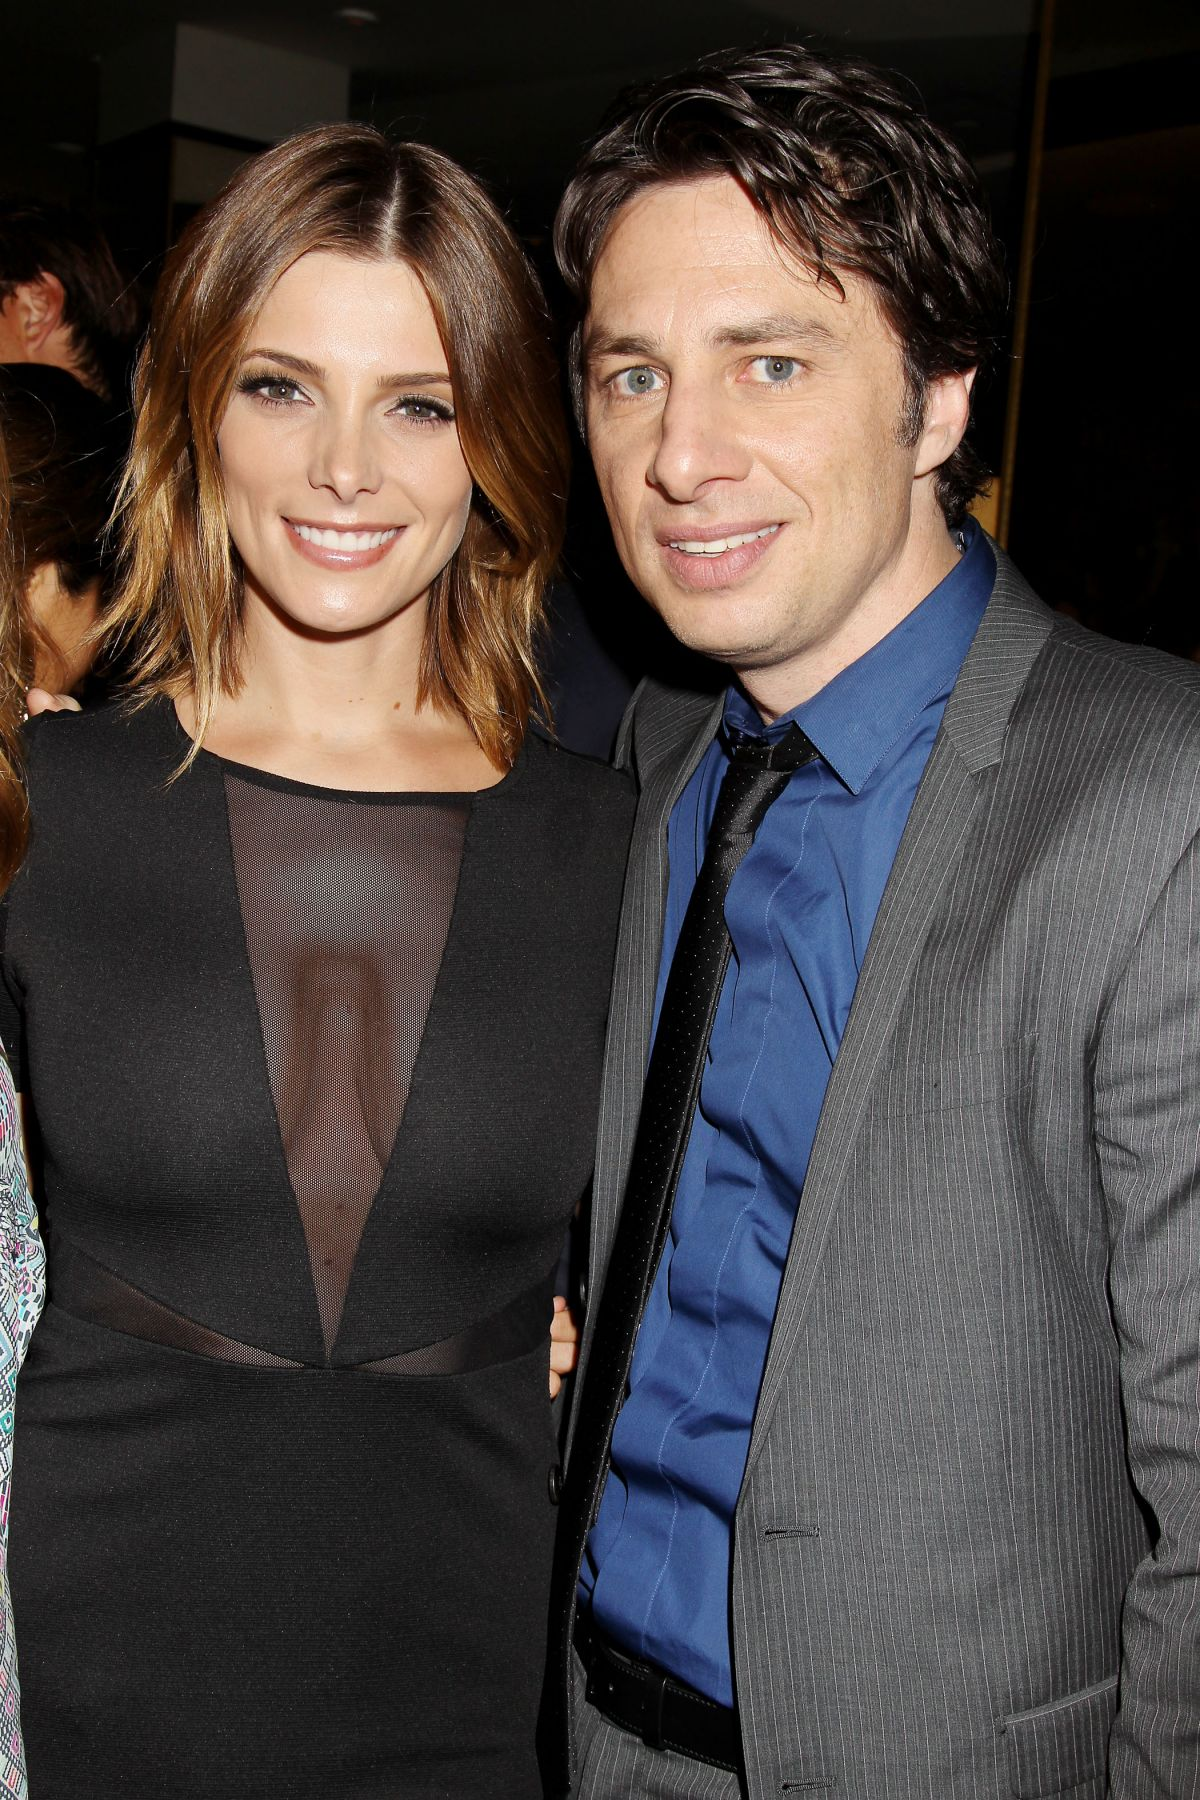 ASHLEY GREENE at Wish I Was Here Premiere After-party in New York